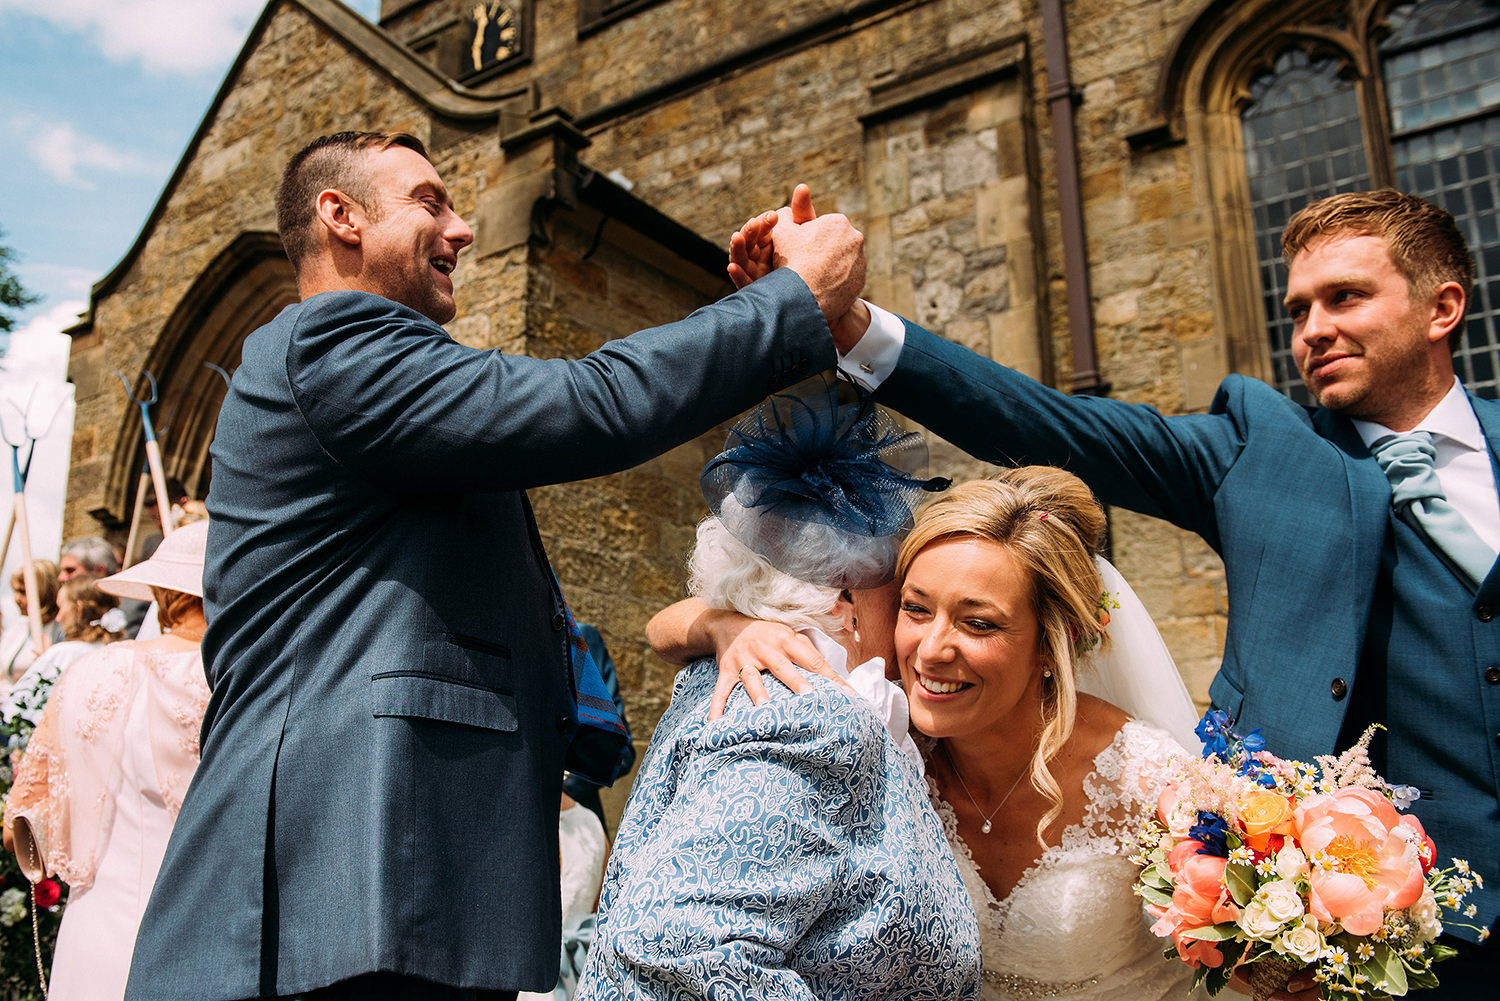 Bride hugs grandma and groom 'high-five's' his friend over the top